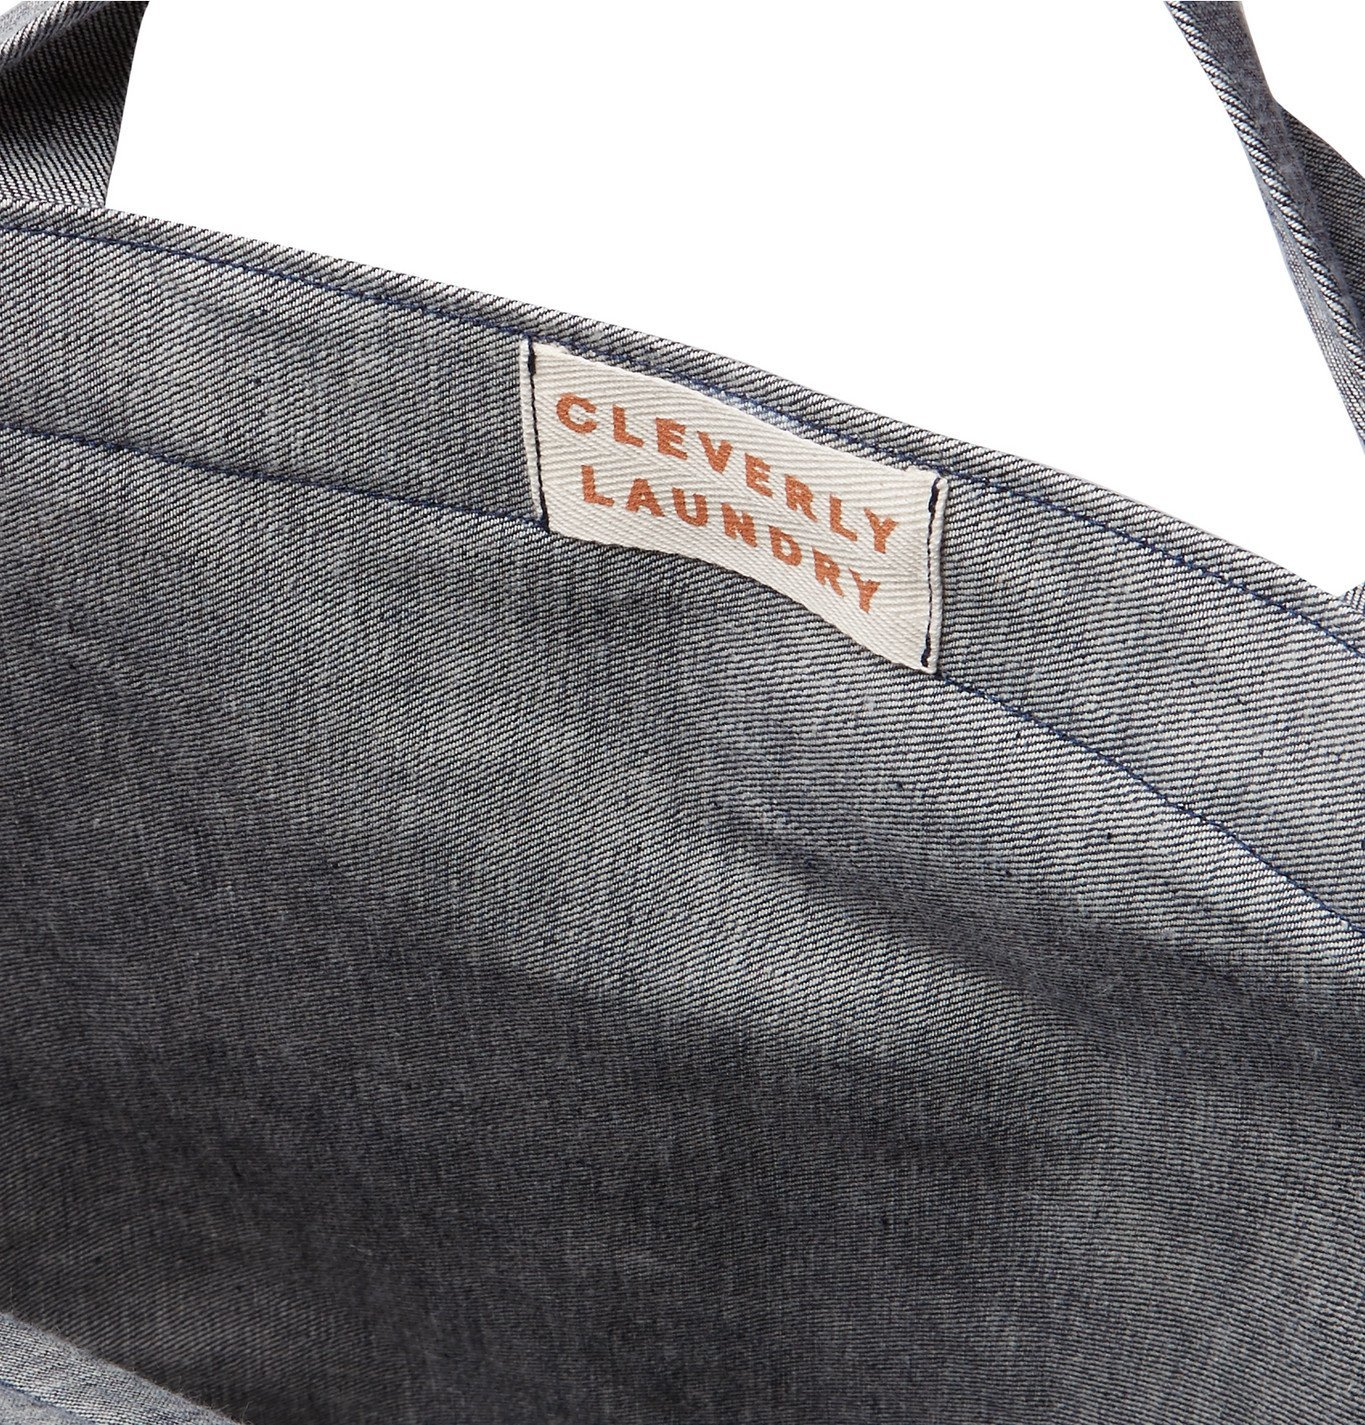 Cleverly Laundry - Two-Tone Denim Laundry Bag - Blue